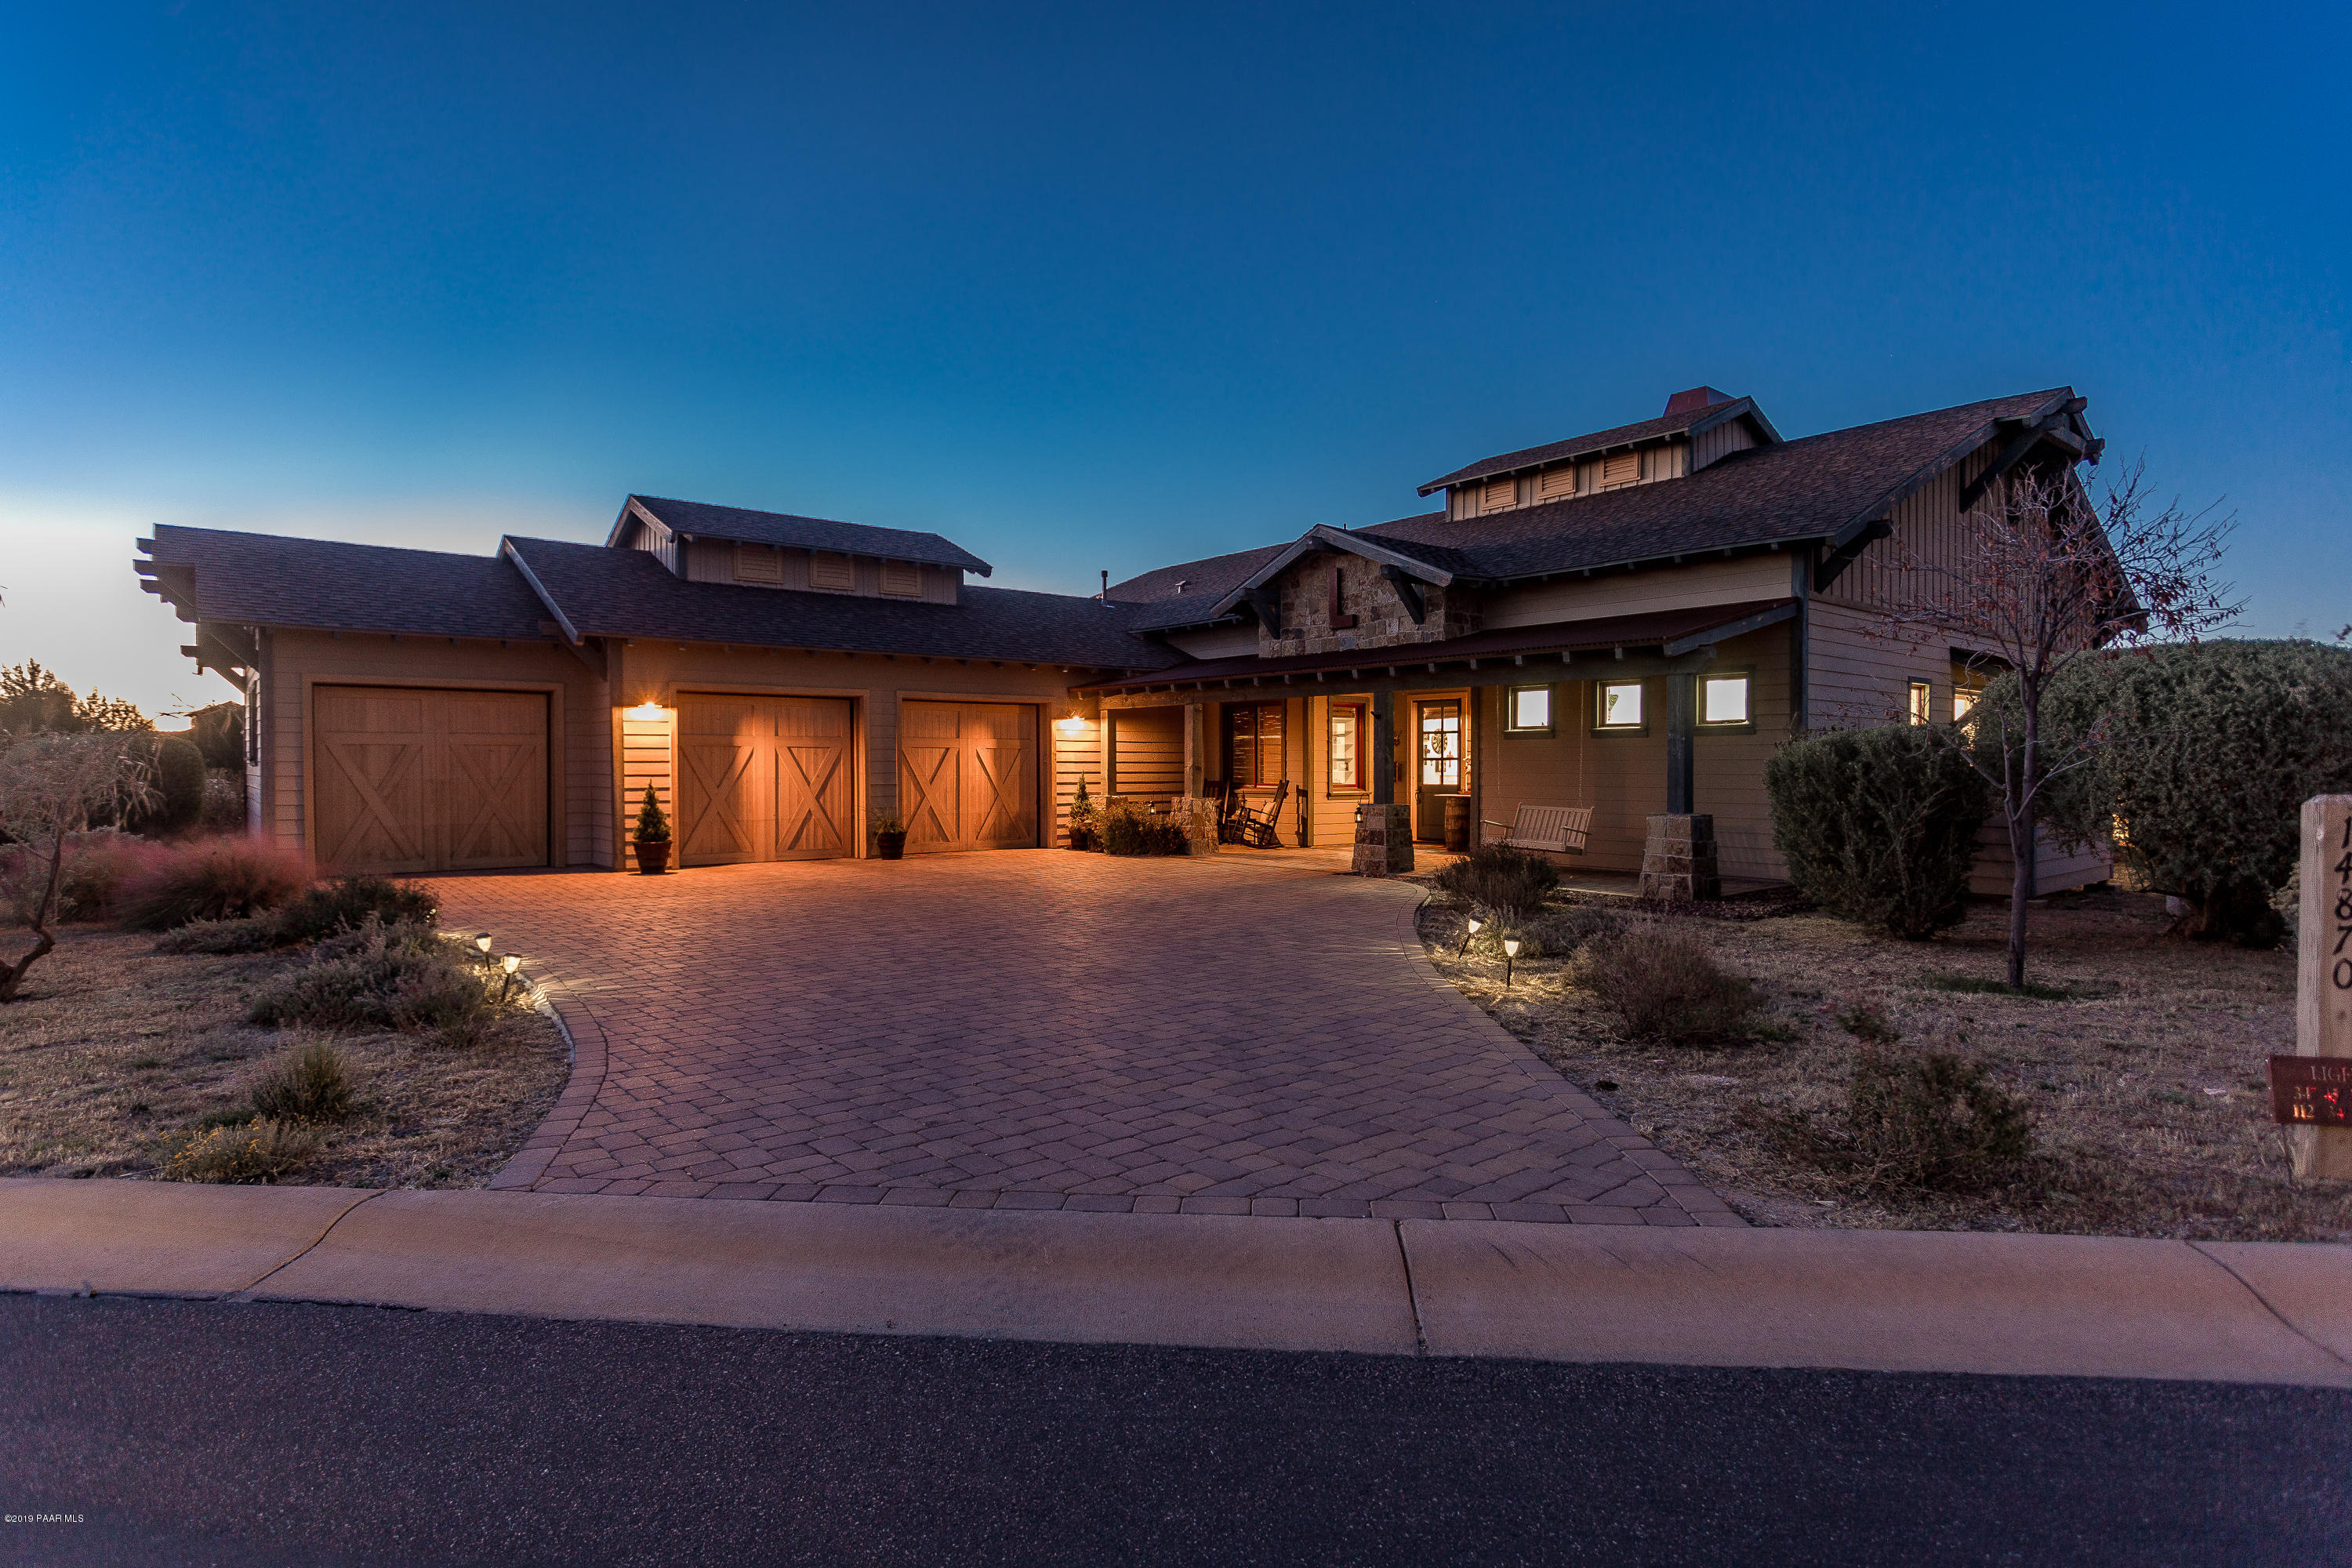 14870 N Hazy Swayze Lane, Prescott, Arizona